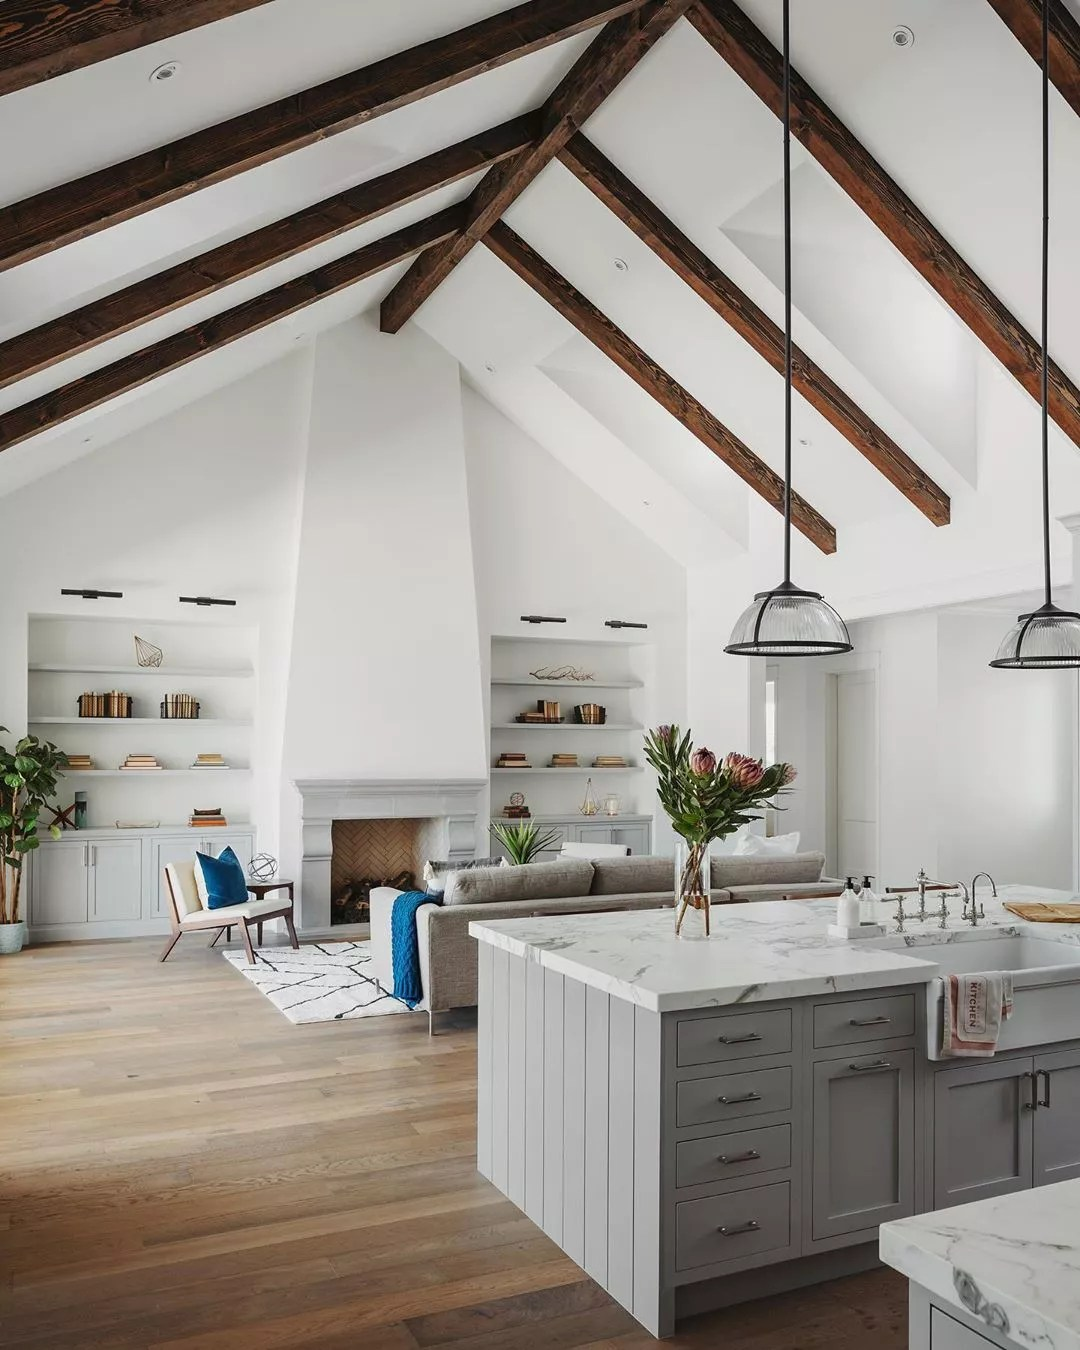 vaulted ceiling over living room and kitchen with wooden beams photo by Instagram user @roehnerryan